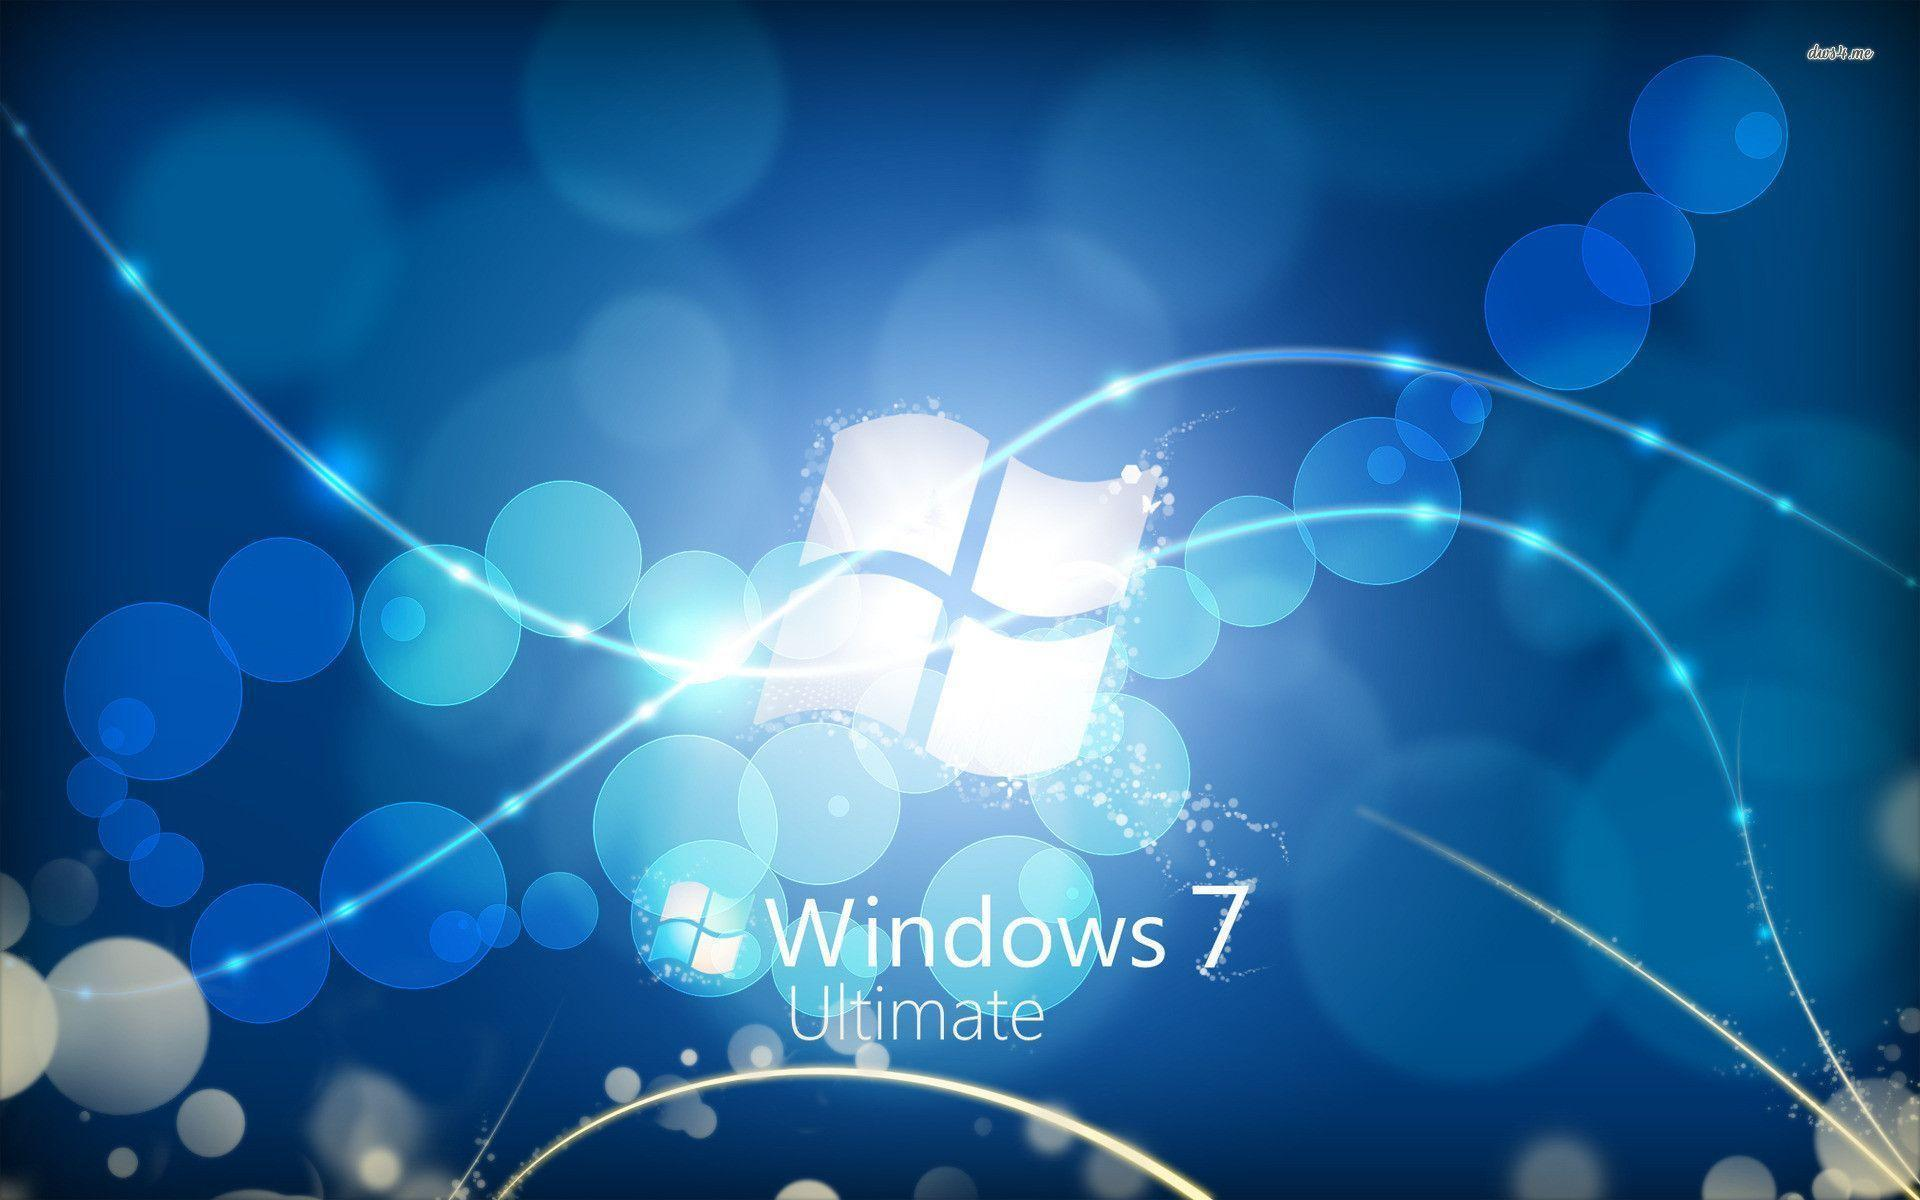 Windows 7 Ultimate Backgrounds  Wallpaper Cave